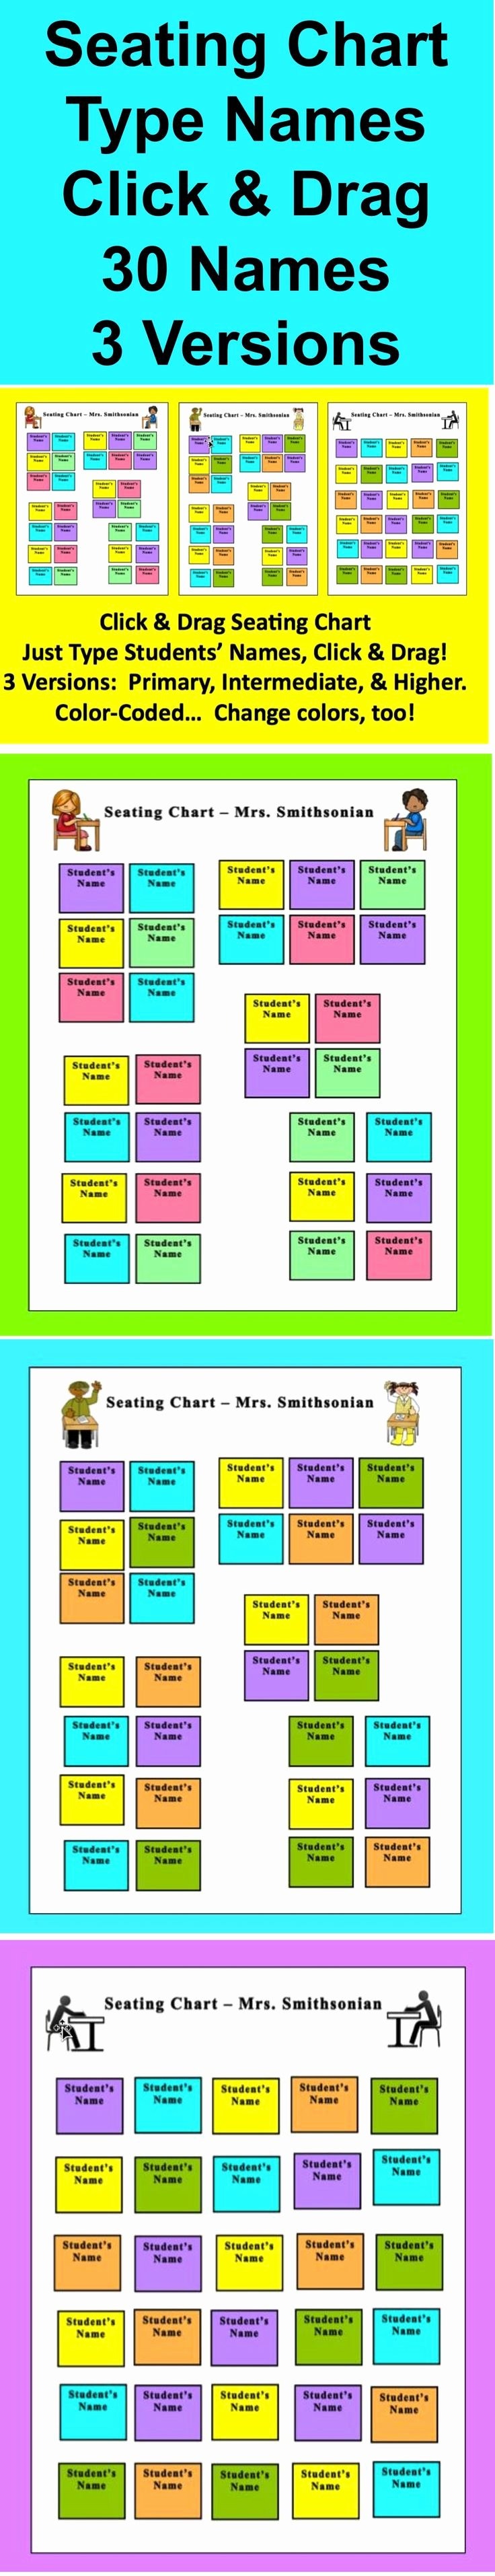 Seating Chart for Classroom Awesome Best 25 Seating Chart Classroom Ideas On Pinterest